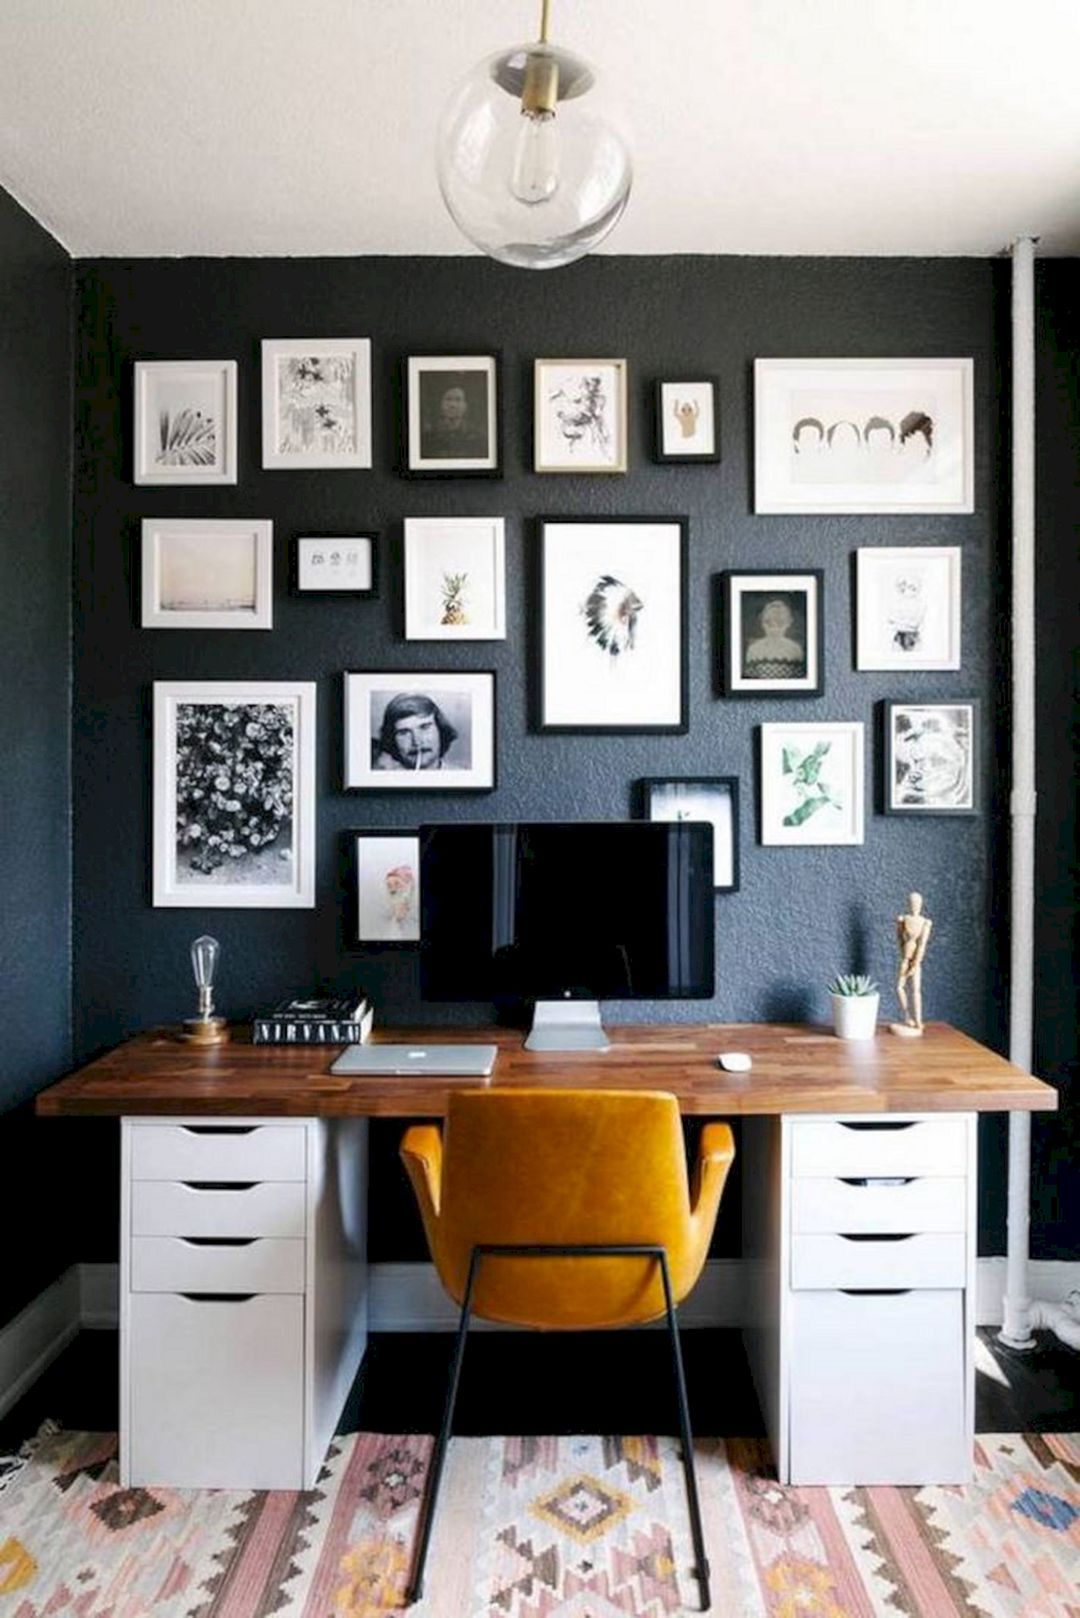 25+ Most Beautiful Home Office Design Ideas | Office designs, Office ...